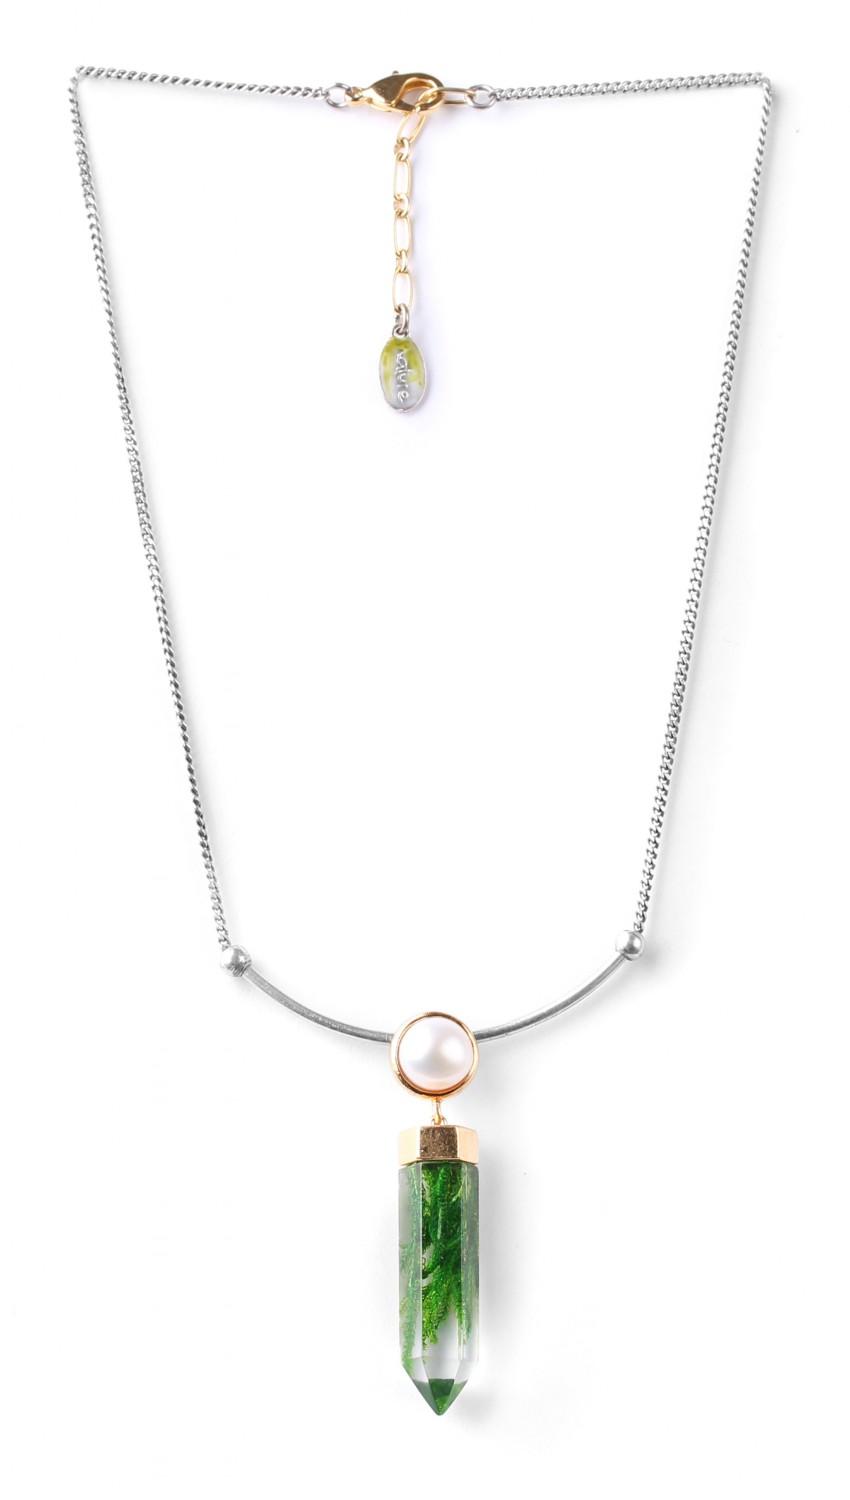 PERLE D'EAU DOUCE collier court